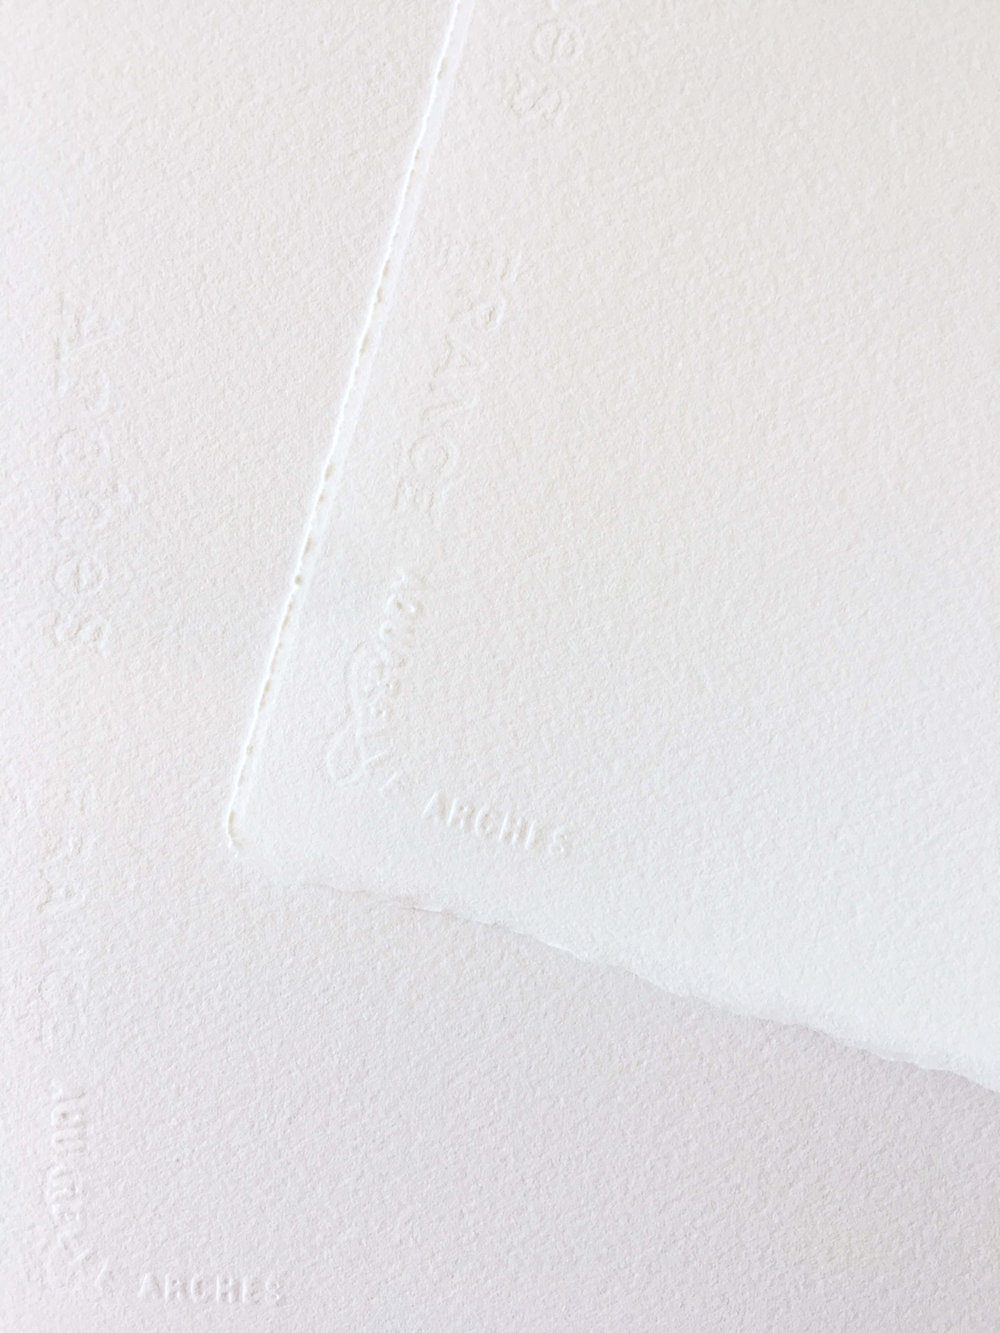 Deckled Edges on Arches Watercolor Sheets